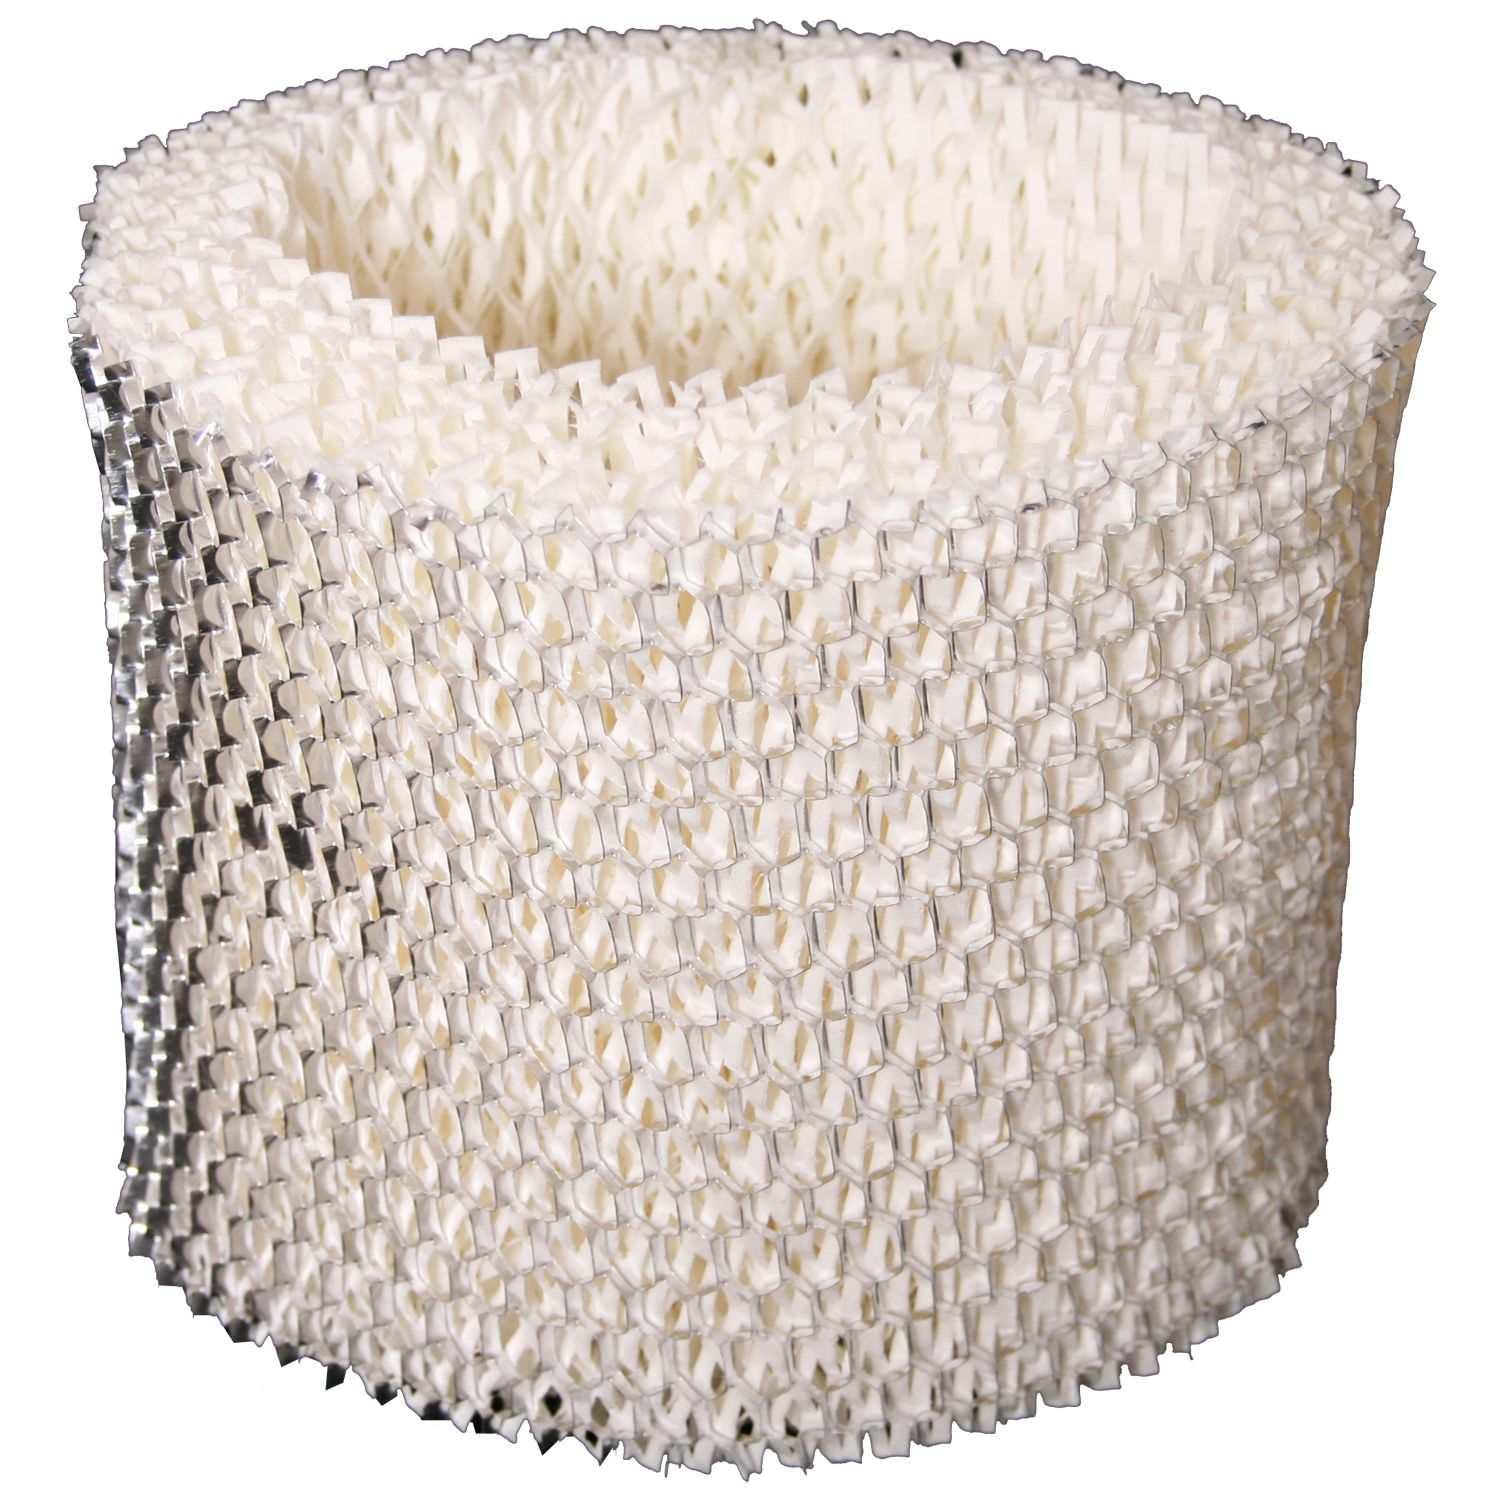 BESTAIR Humidi-WICK Humidifier Wick Filter D88